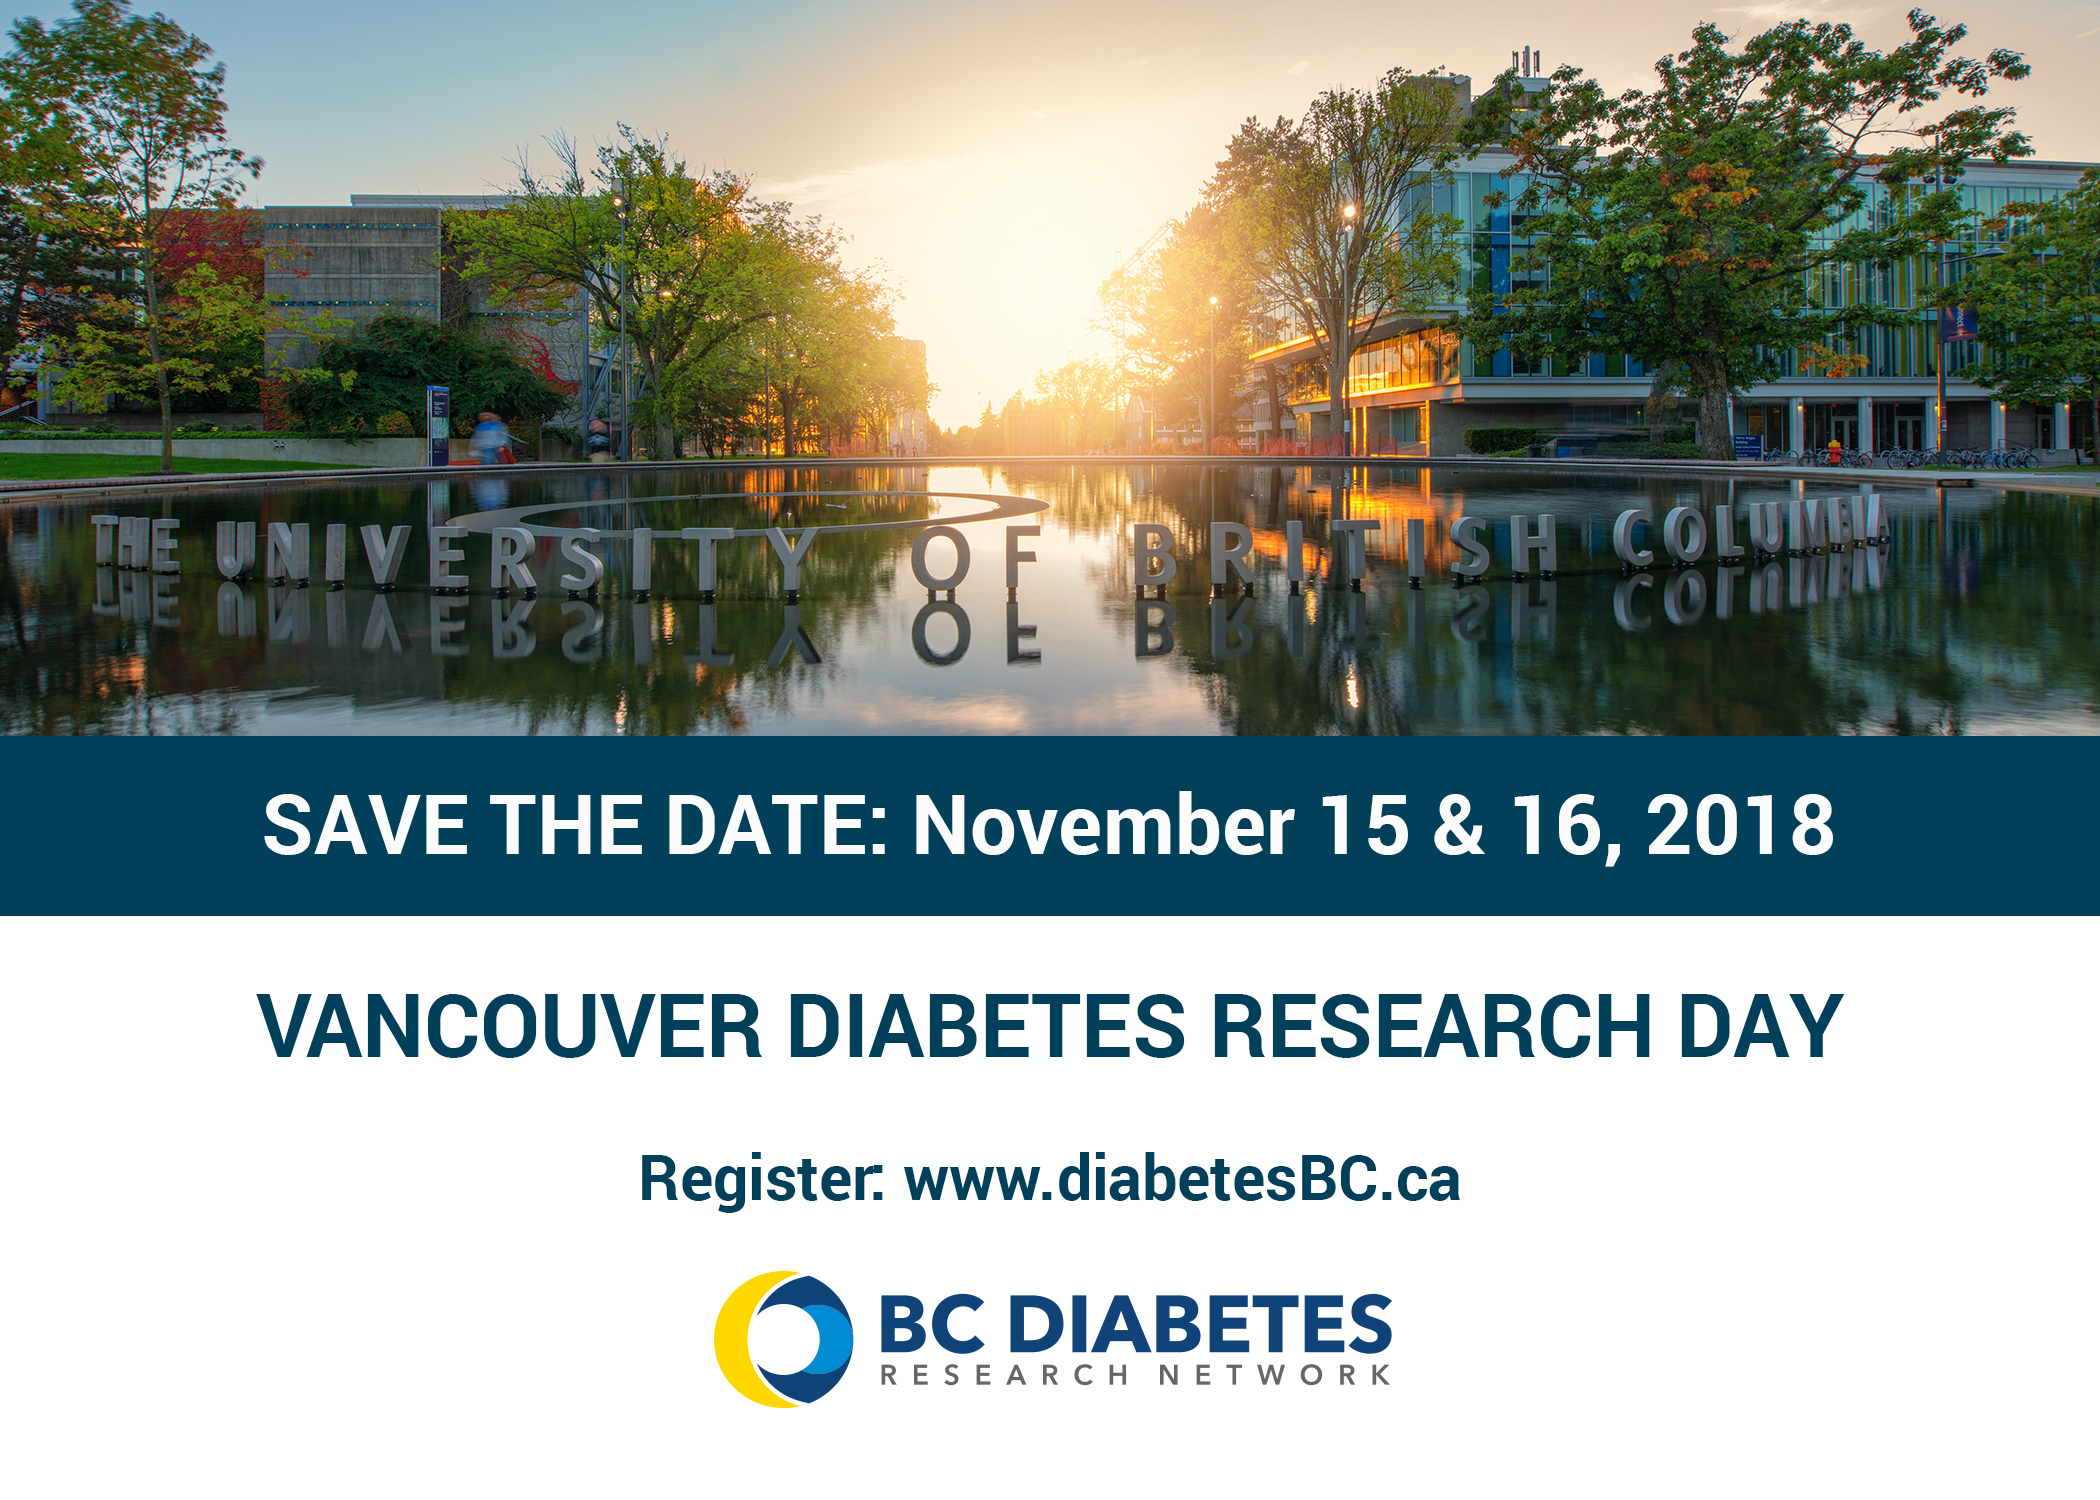 Vancouver Diabetes Research Day - Save the Date